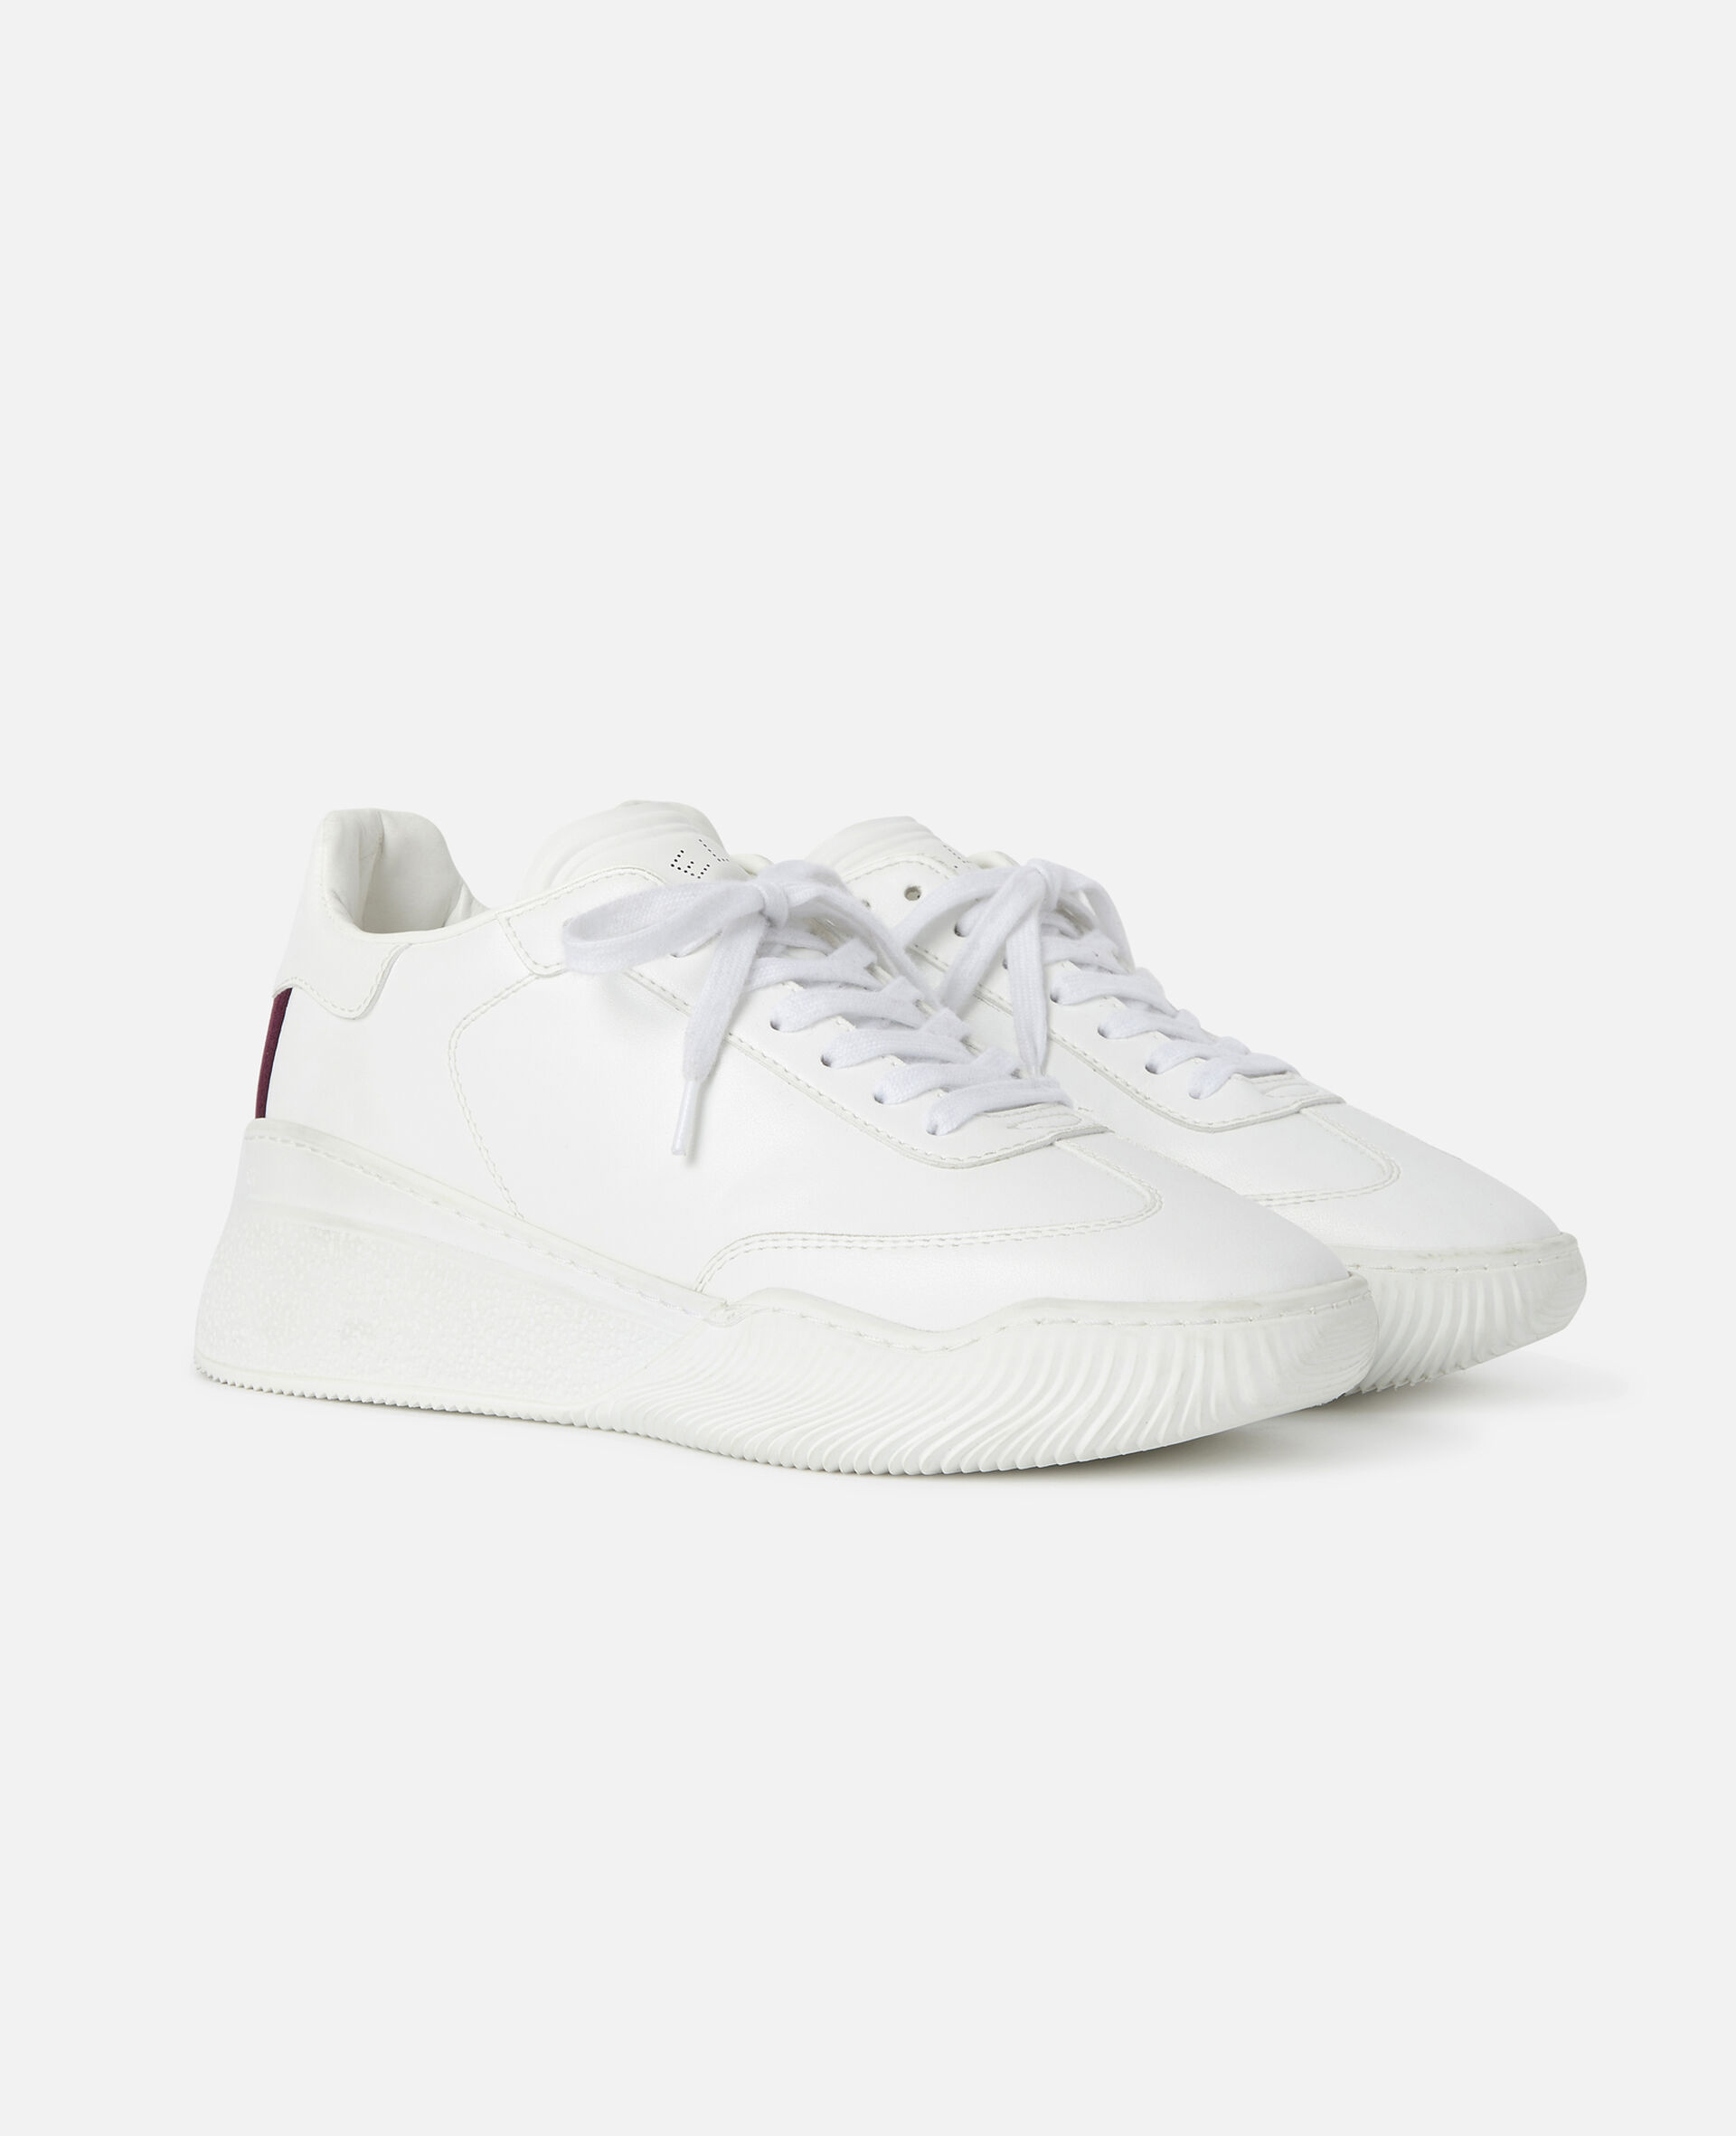 Loop Lace-up Sneakers-White-large image number 1